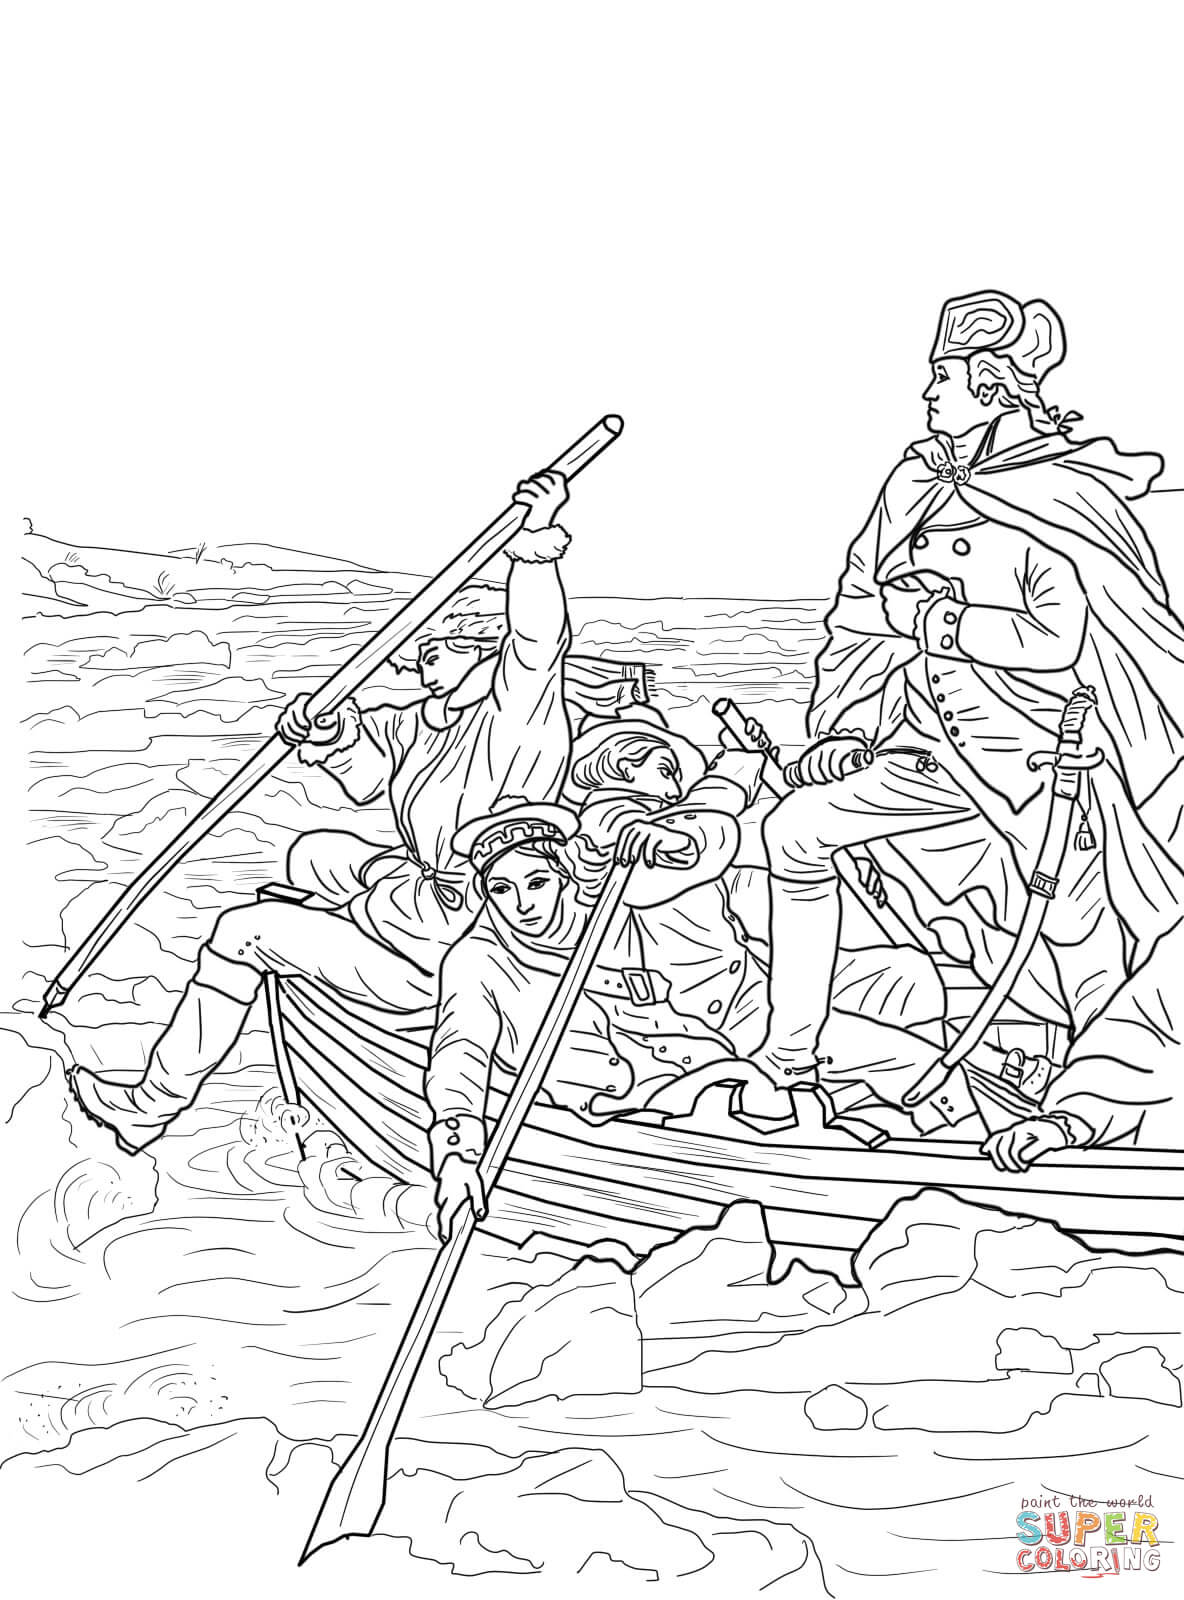 coloring pages of george washington - photo#13